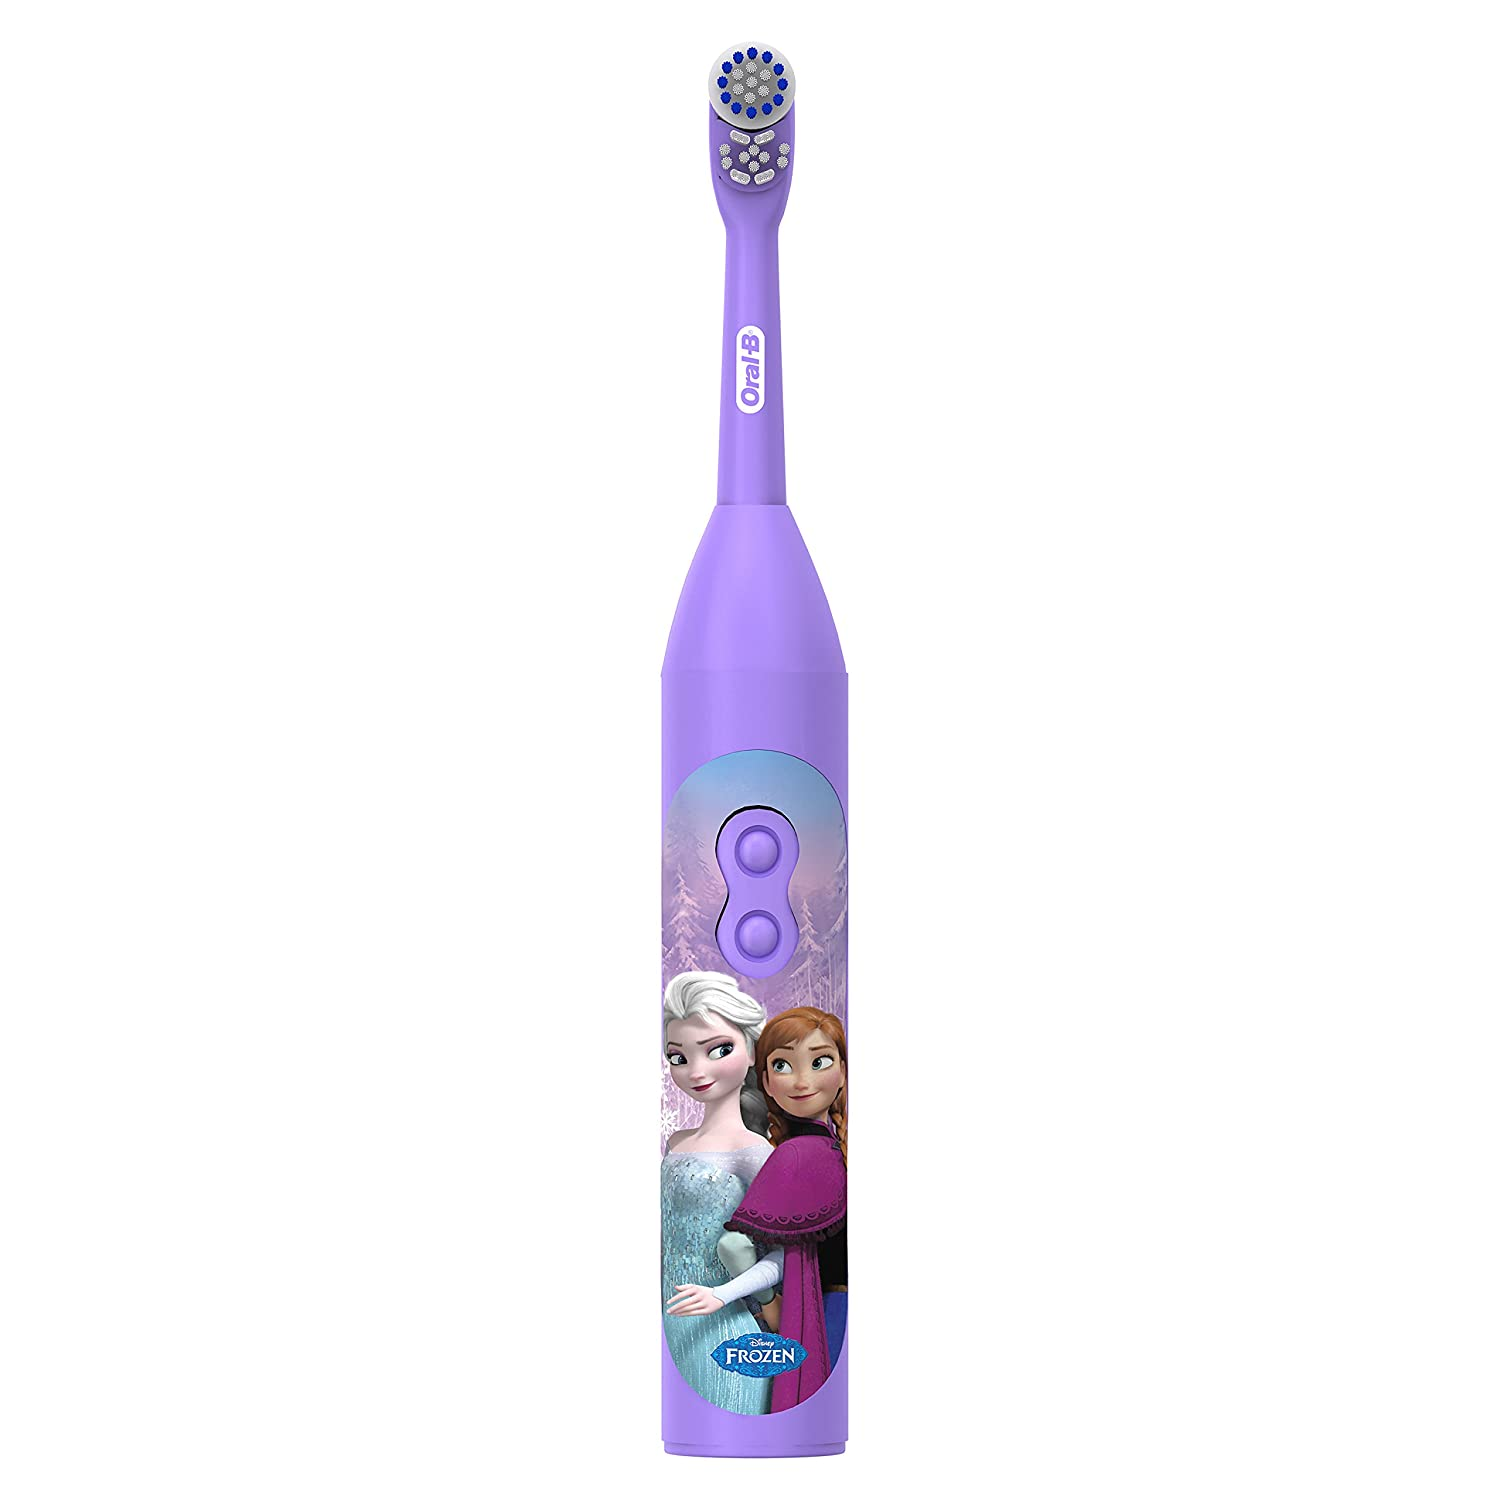 Oral-B Pro-Health Jr. Battery Powered Kid's Toothbrush featuring Disney's Frozen